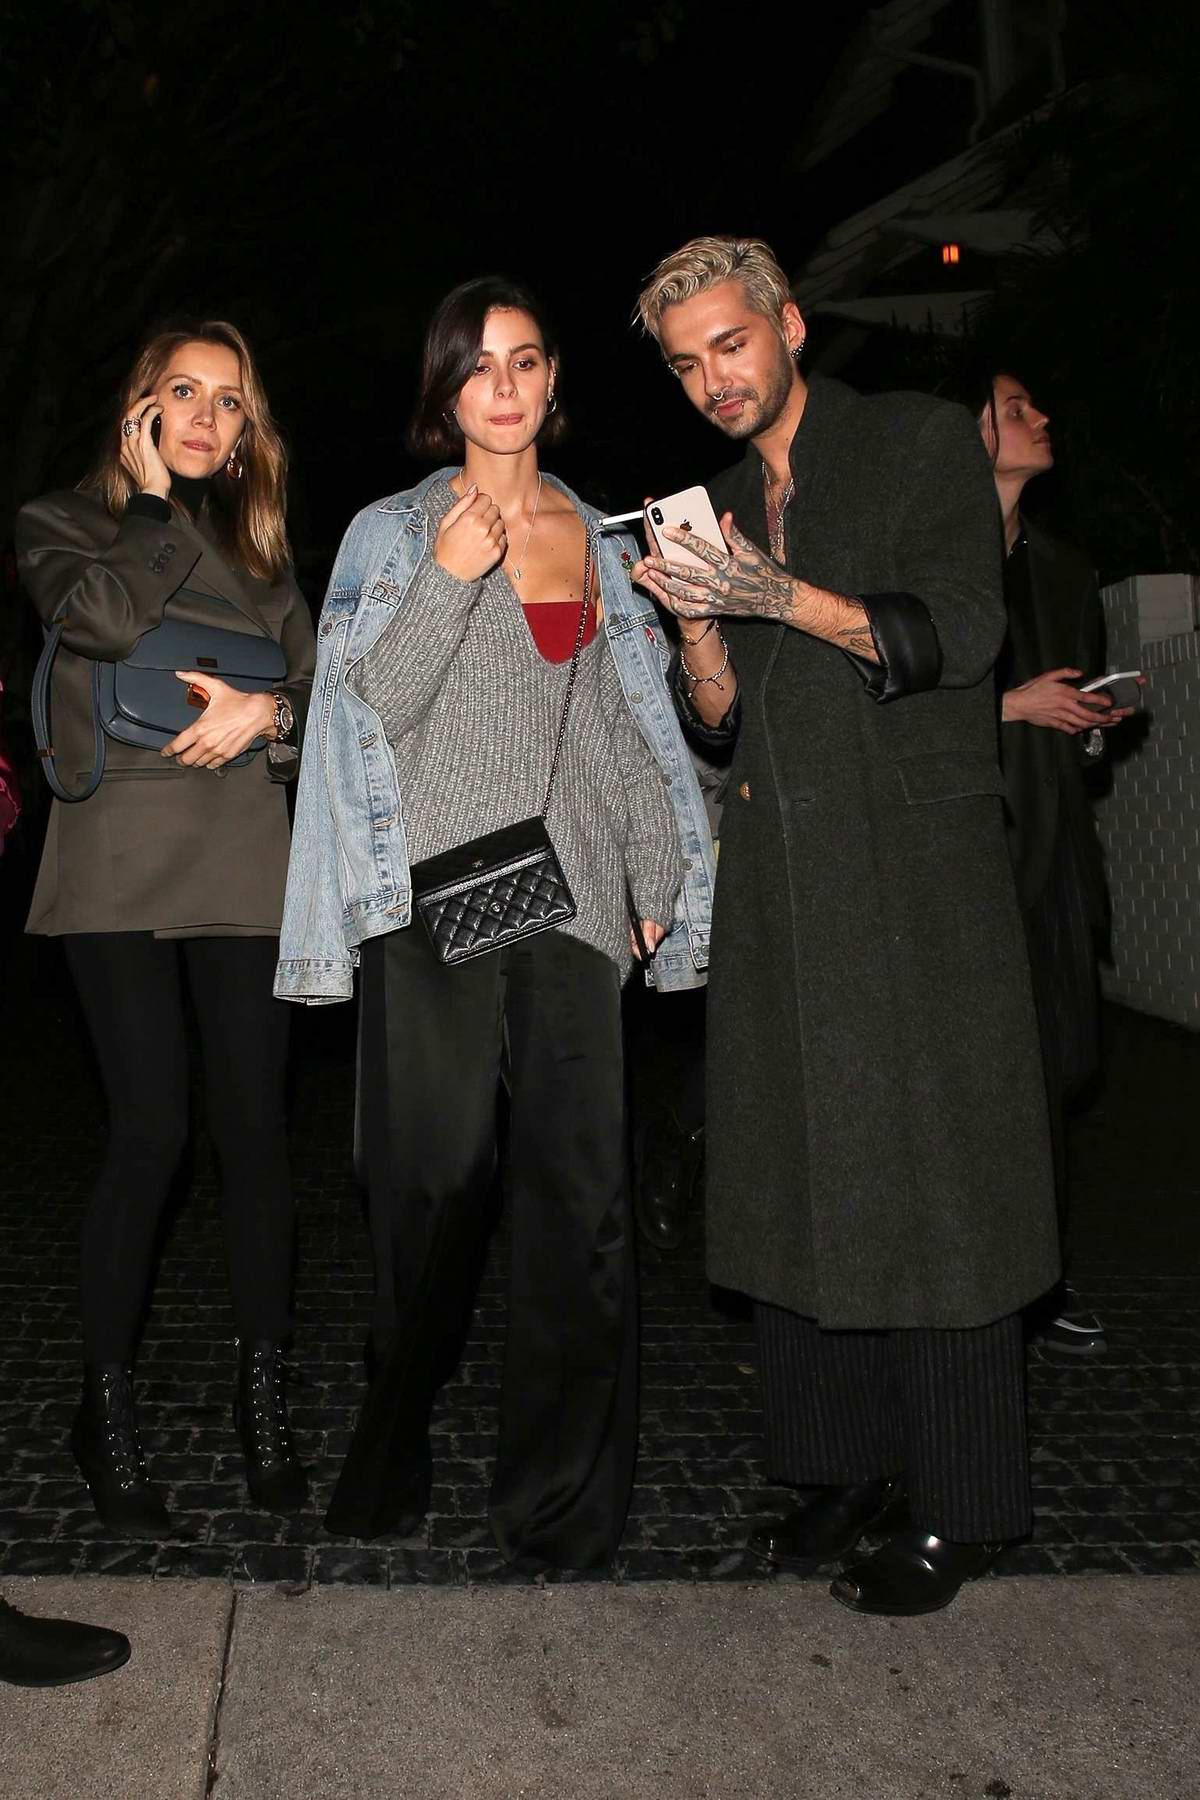 Lena Meyer-Landrut grabs dinner with Bill Kaulitz at Chateau Marmont in West Hollywood, Los Angeles